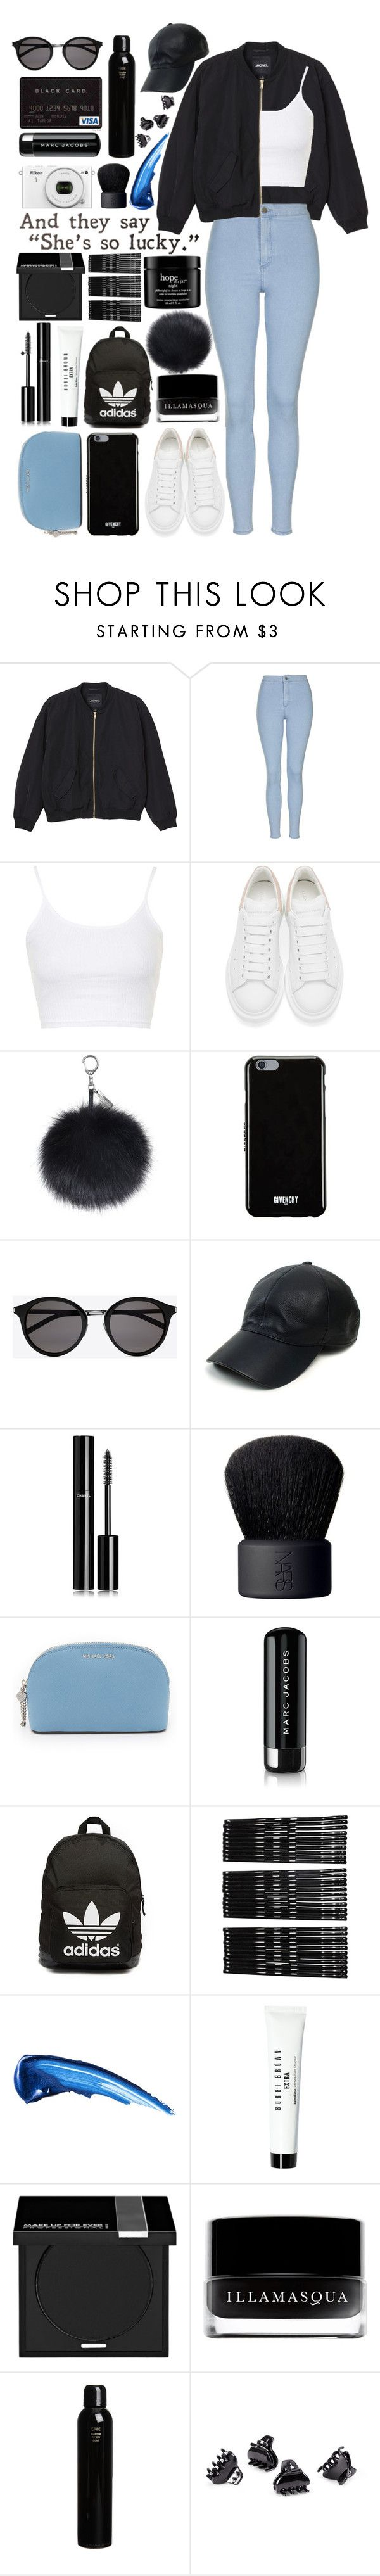 """""""#166 - Don't Mess With My Heart"""" by lolohohokoko ❤ liked on Polyvore featuring Monki, Topshop, Alexander McQueen, Givenchy, Yves Saint Laurent, Vianel, Chanel, NARS Cosmetics, MICHAEL Michael Kors and Marc Jacobs"""